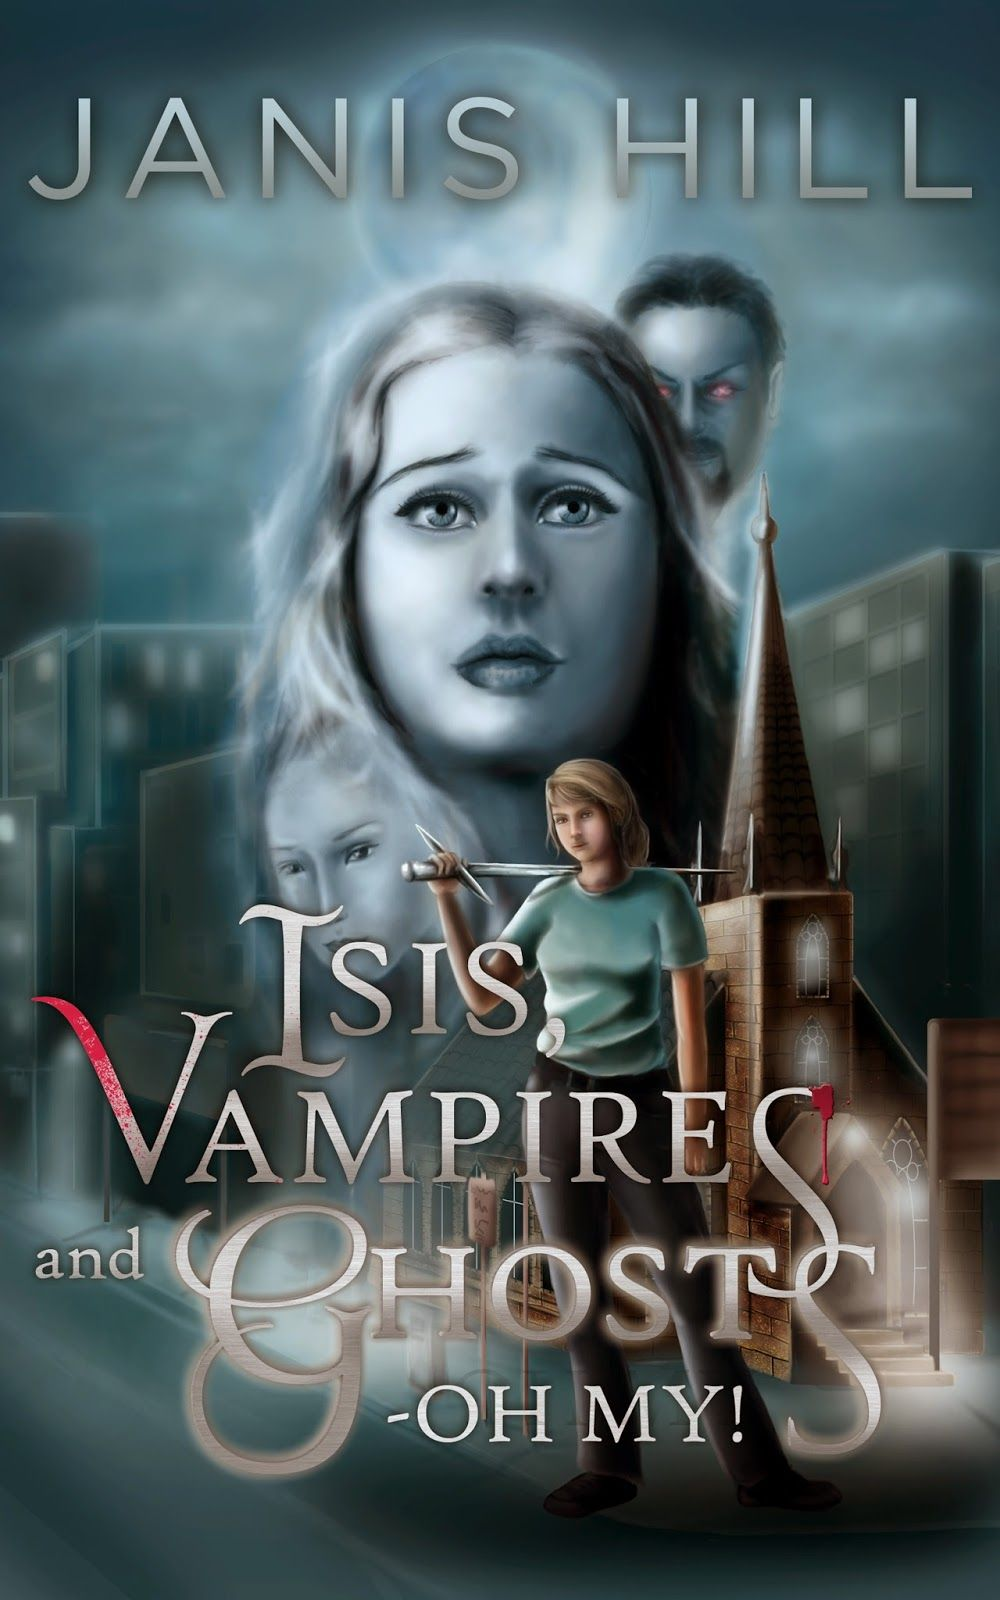 Isis, Vampires and Ghosts—Oh My! by Janis Hill Other World Bk1 http://coverreveals.blogspot.com/2014/09/cover-reveal-isis-vampires-and-ghostsoh.html When Stephanie discovers her estranged, wild-child little sister has died, she finds Estella's death is not necessarily as terminal as she'd been lead to believe, and rather than dead, her sis is more of the undead variety. Must try to save her soul from the vampire who has possessed her. Her help? Ghost of a pissed-off monk with a potty mouth